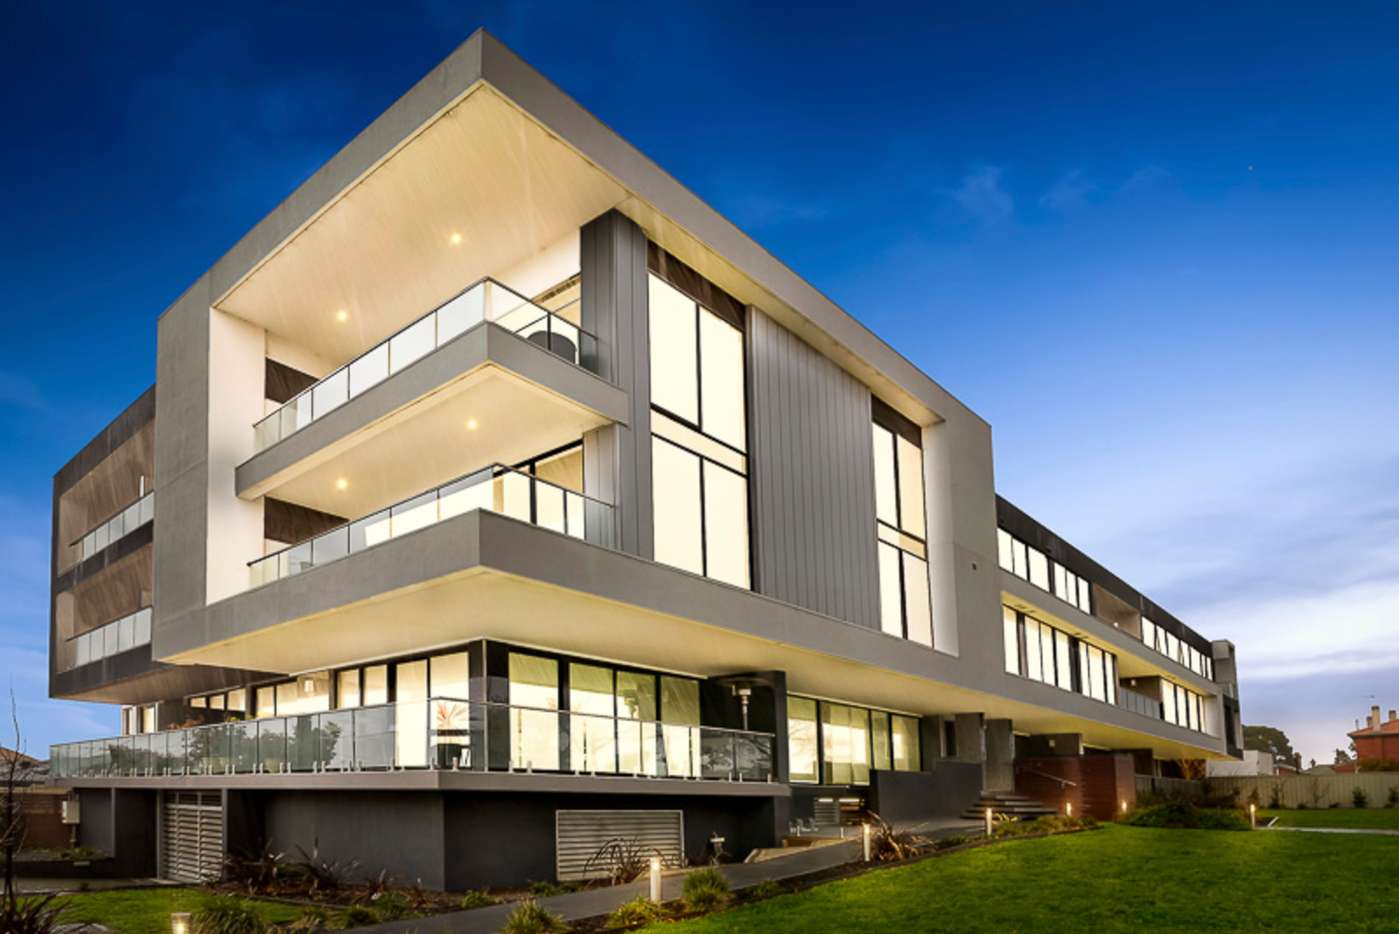 Main view of Homely apartment listing, 102/29-31 Swindon Road, Hughesdale, VIC 3166